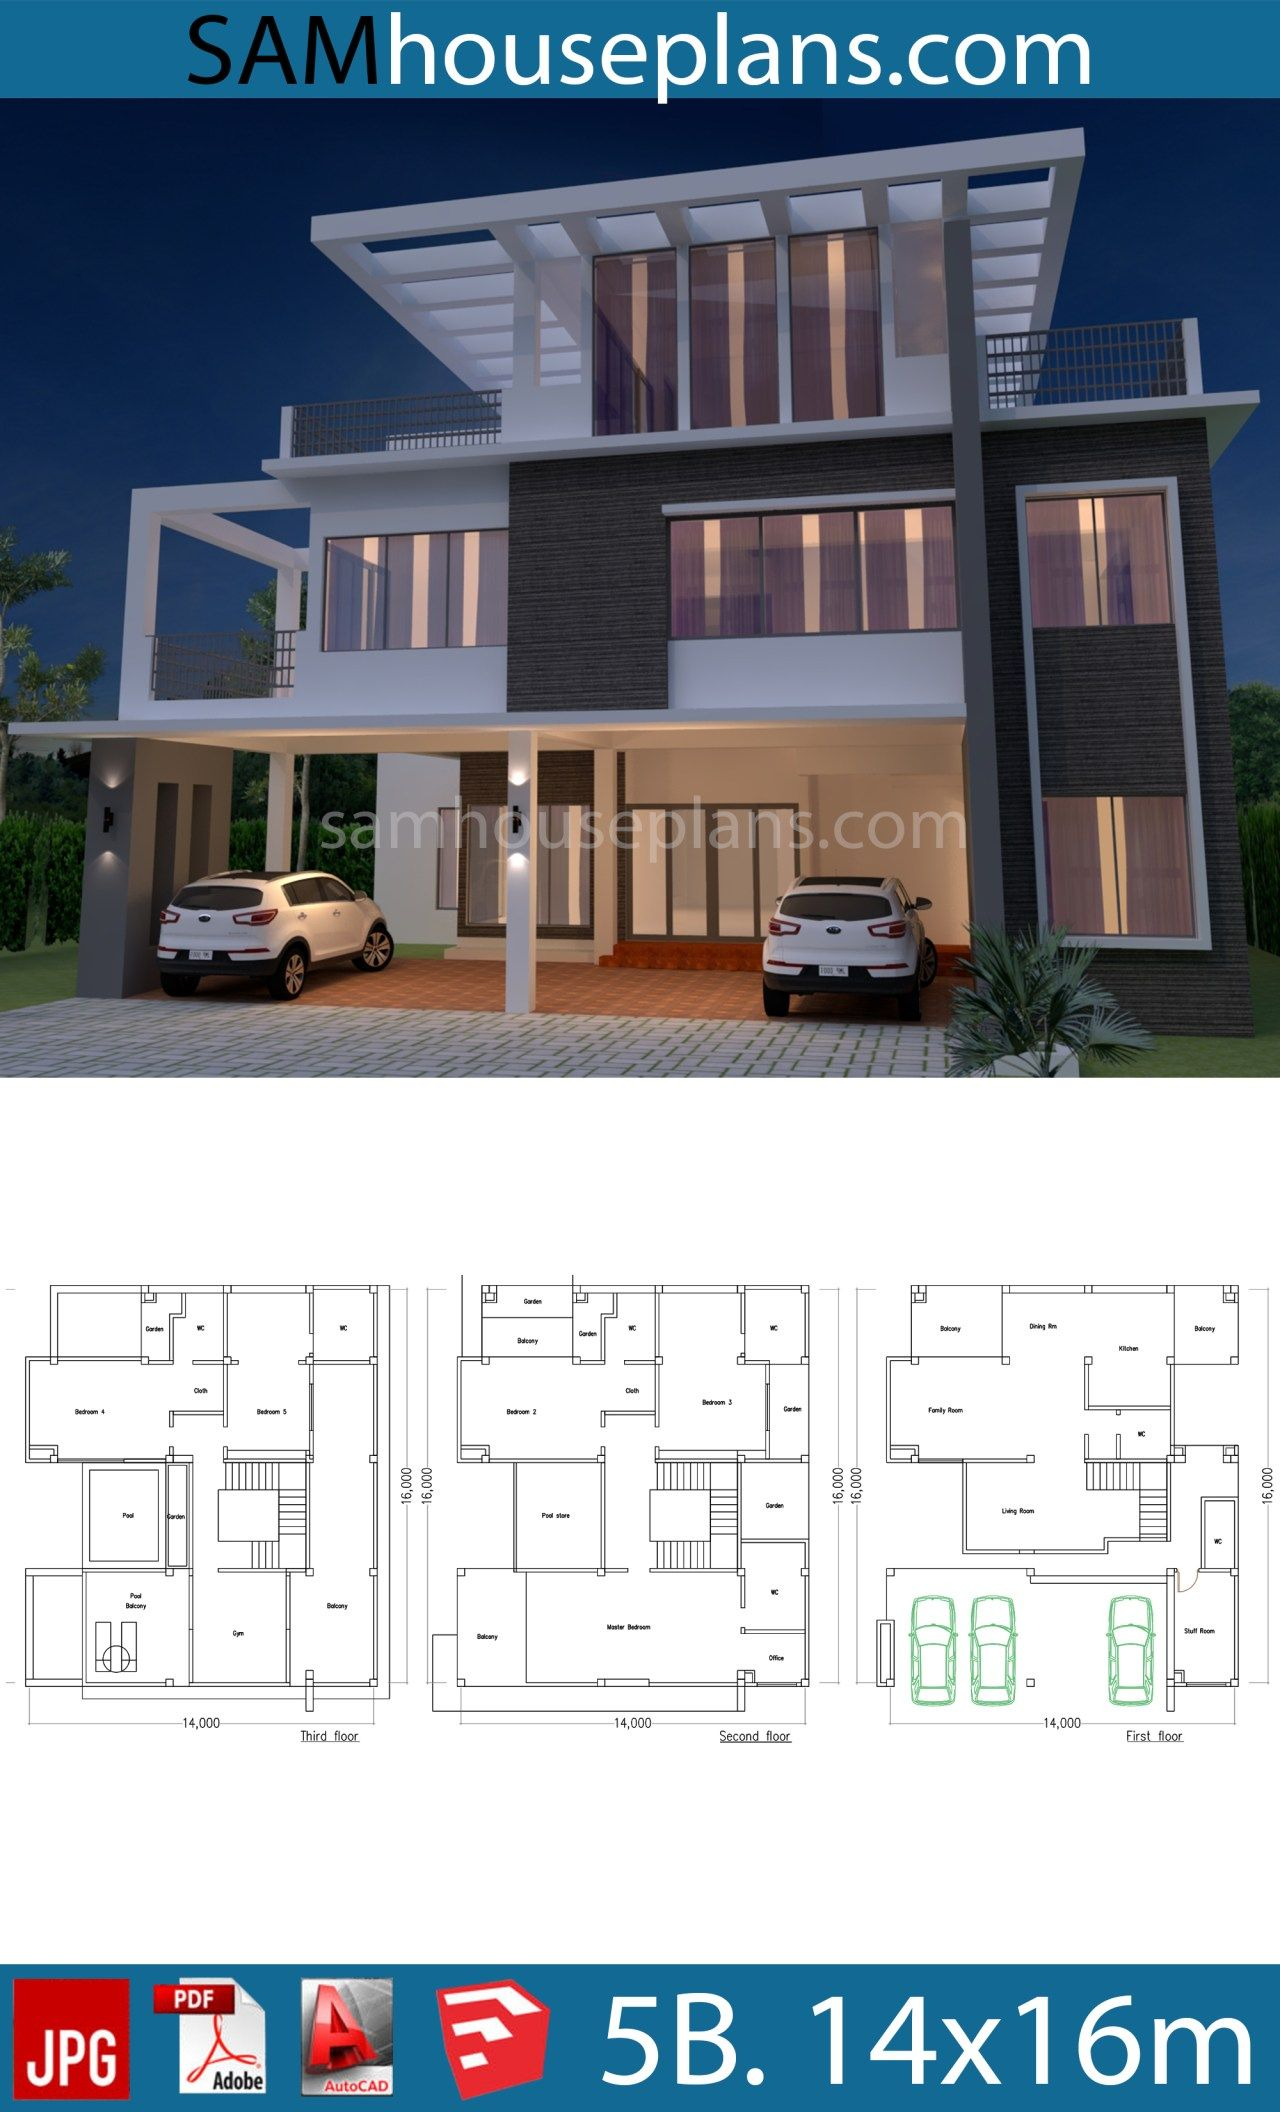 House Plan 14x16m With 5 Bedrooms Sam House Plans Building Plans House Philippines House Design Duplex House Design